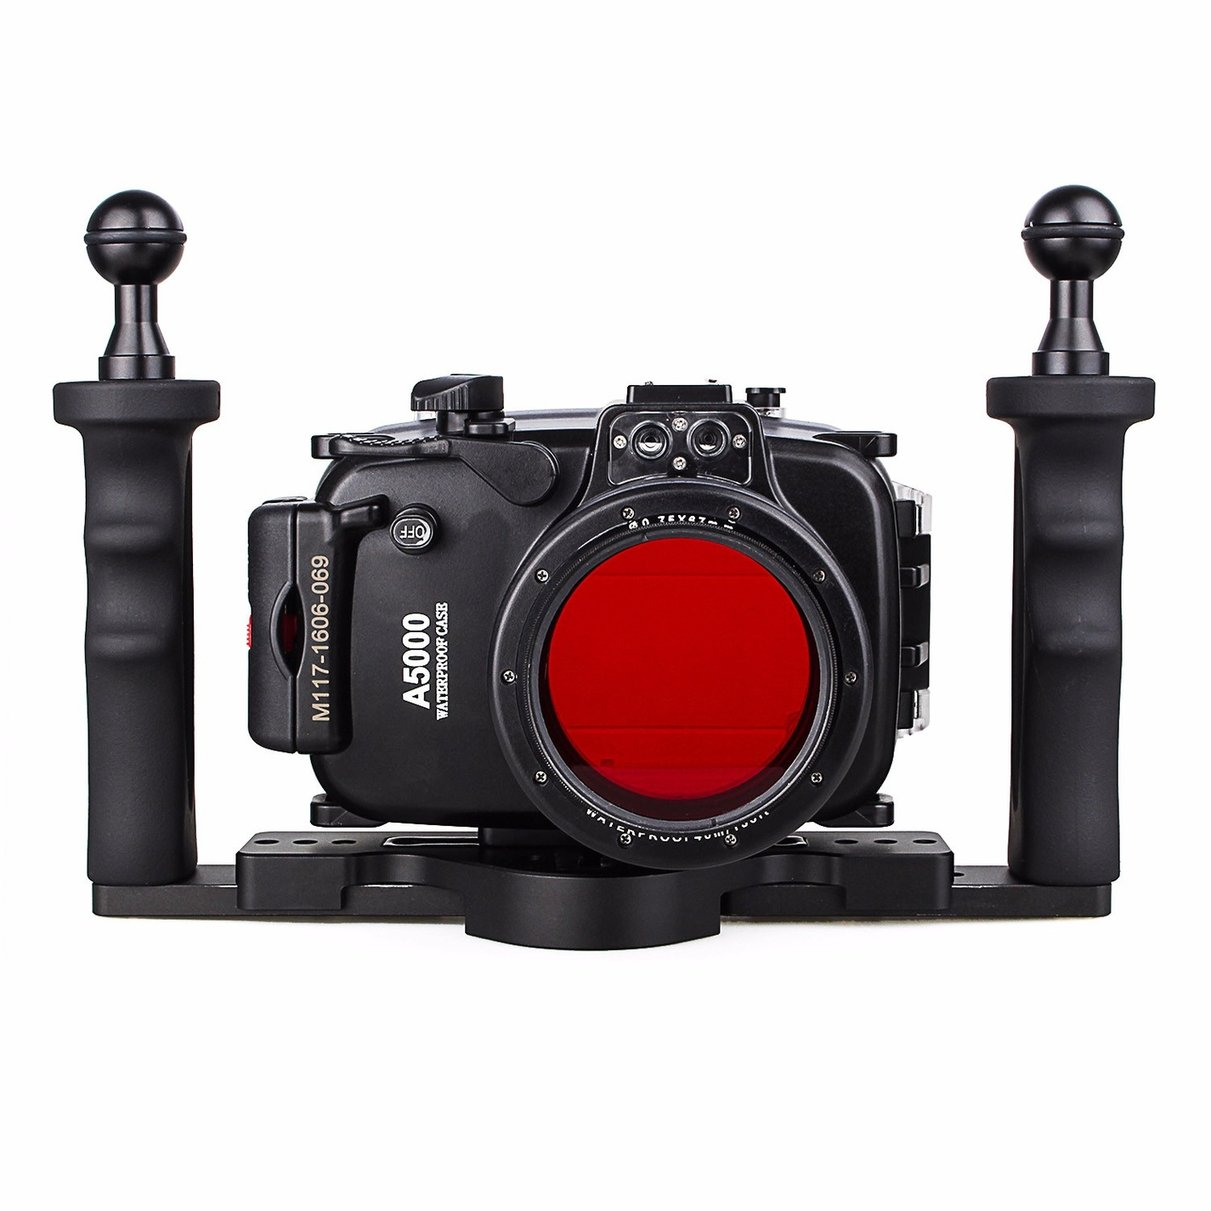 EACHSHOT 40m 130ft Waterproof Underwater Diving Camera Case For Sony A5000 16 50mm Two Hands Aluminium